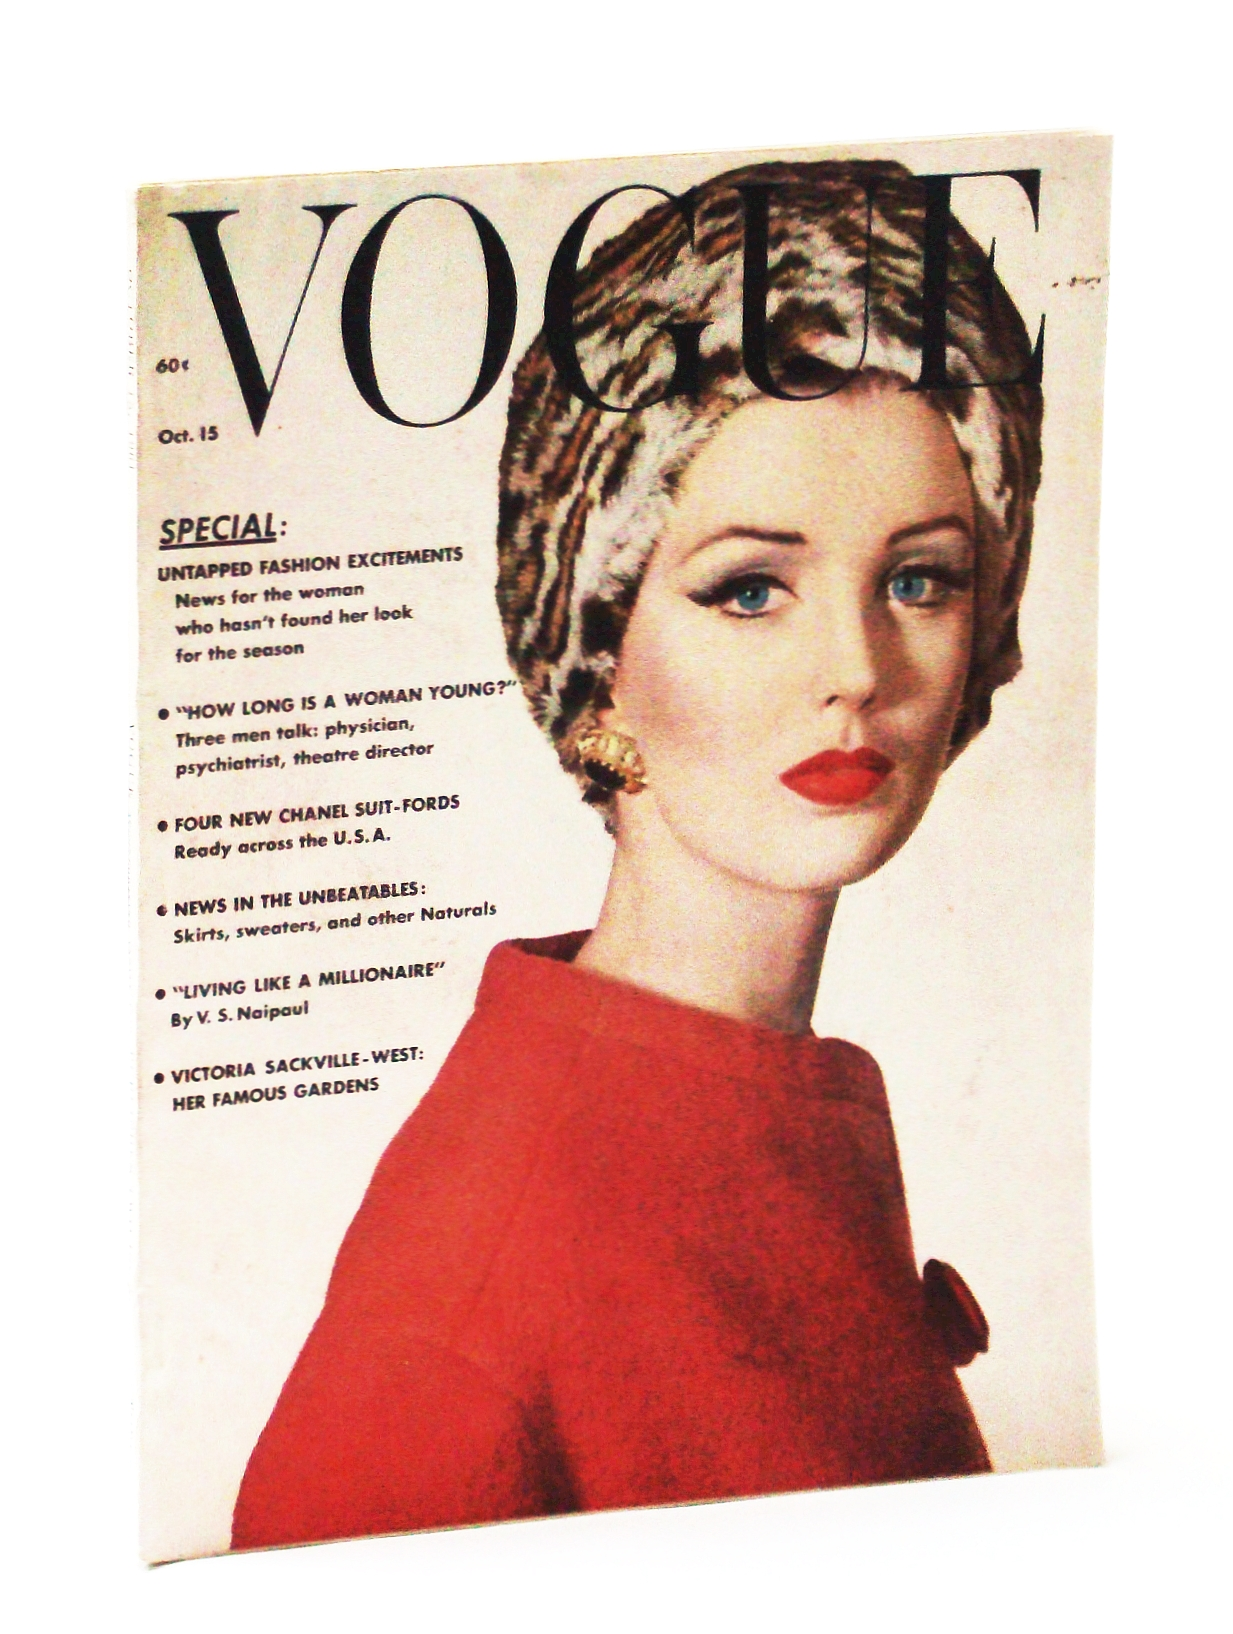 Image for Vogue Magazine (American), October (Oct.) 15, 1961, Vol. 138, No. 7, Whole No. 2067